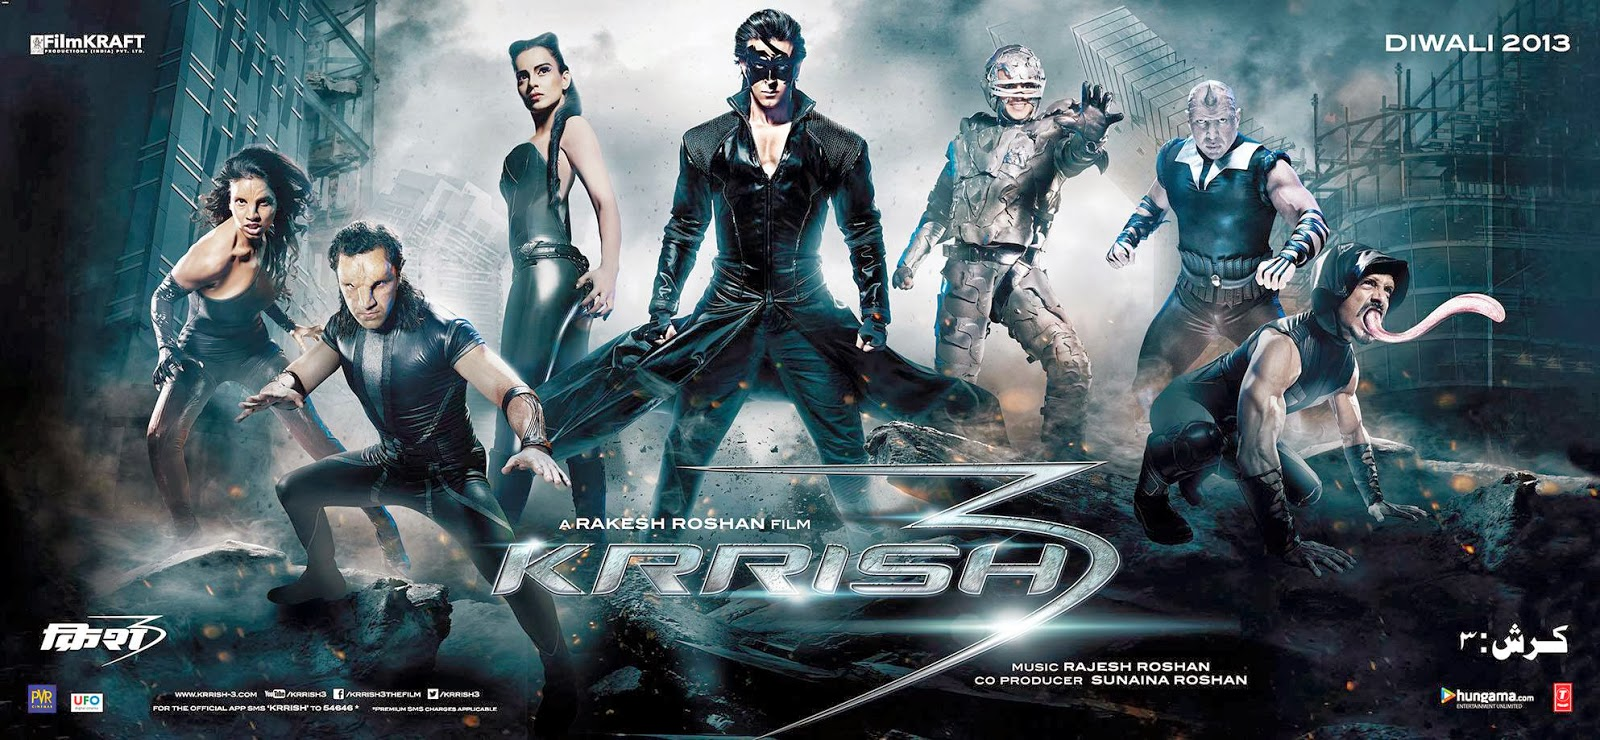 krrish 3 full movie download | latest movies free download